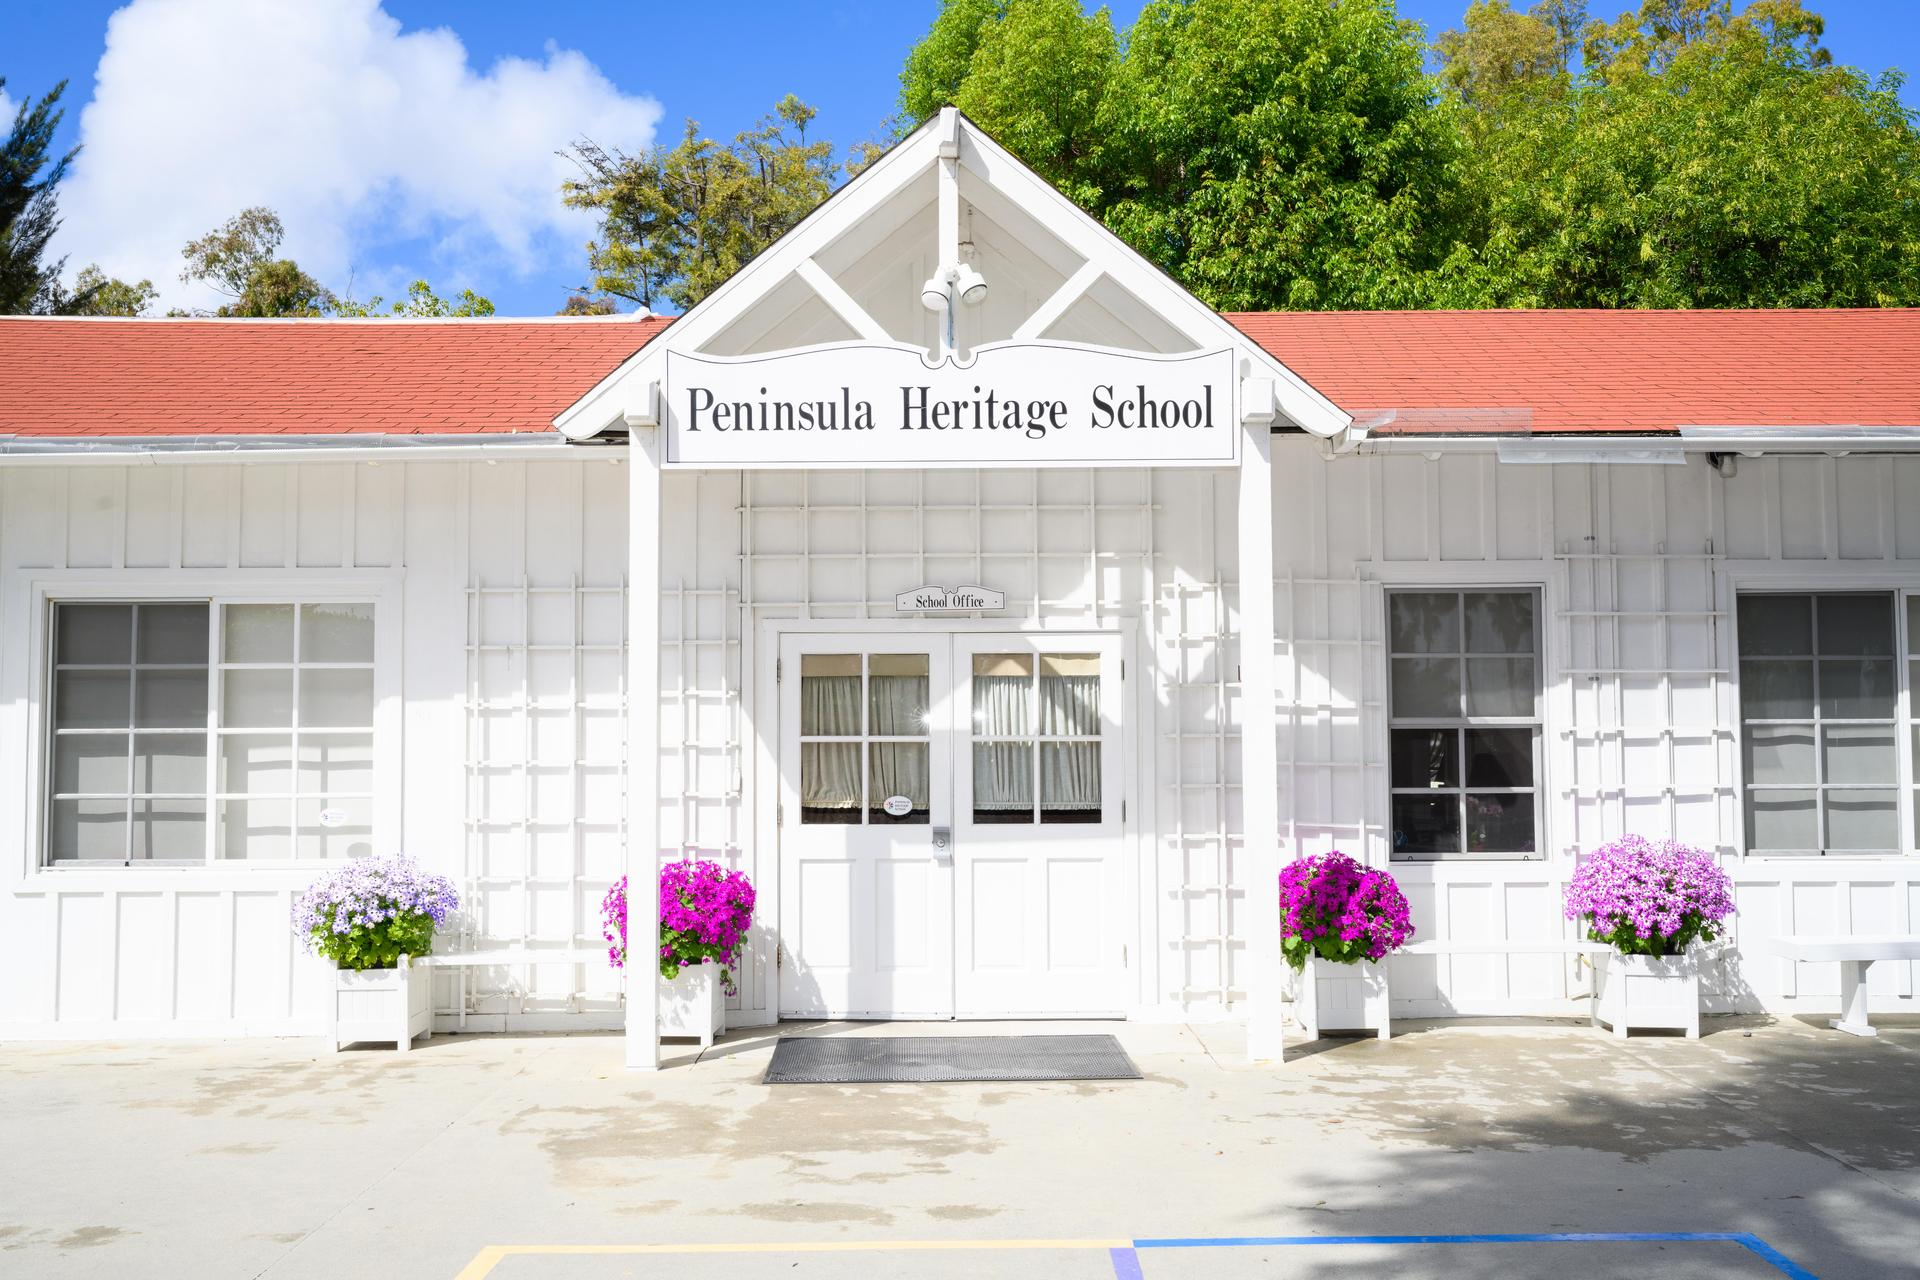 Peninsula Heritage School